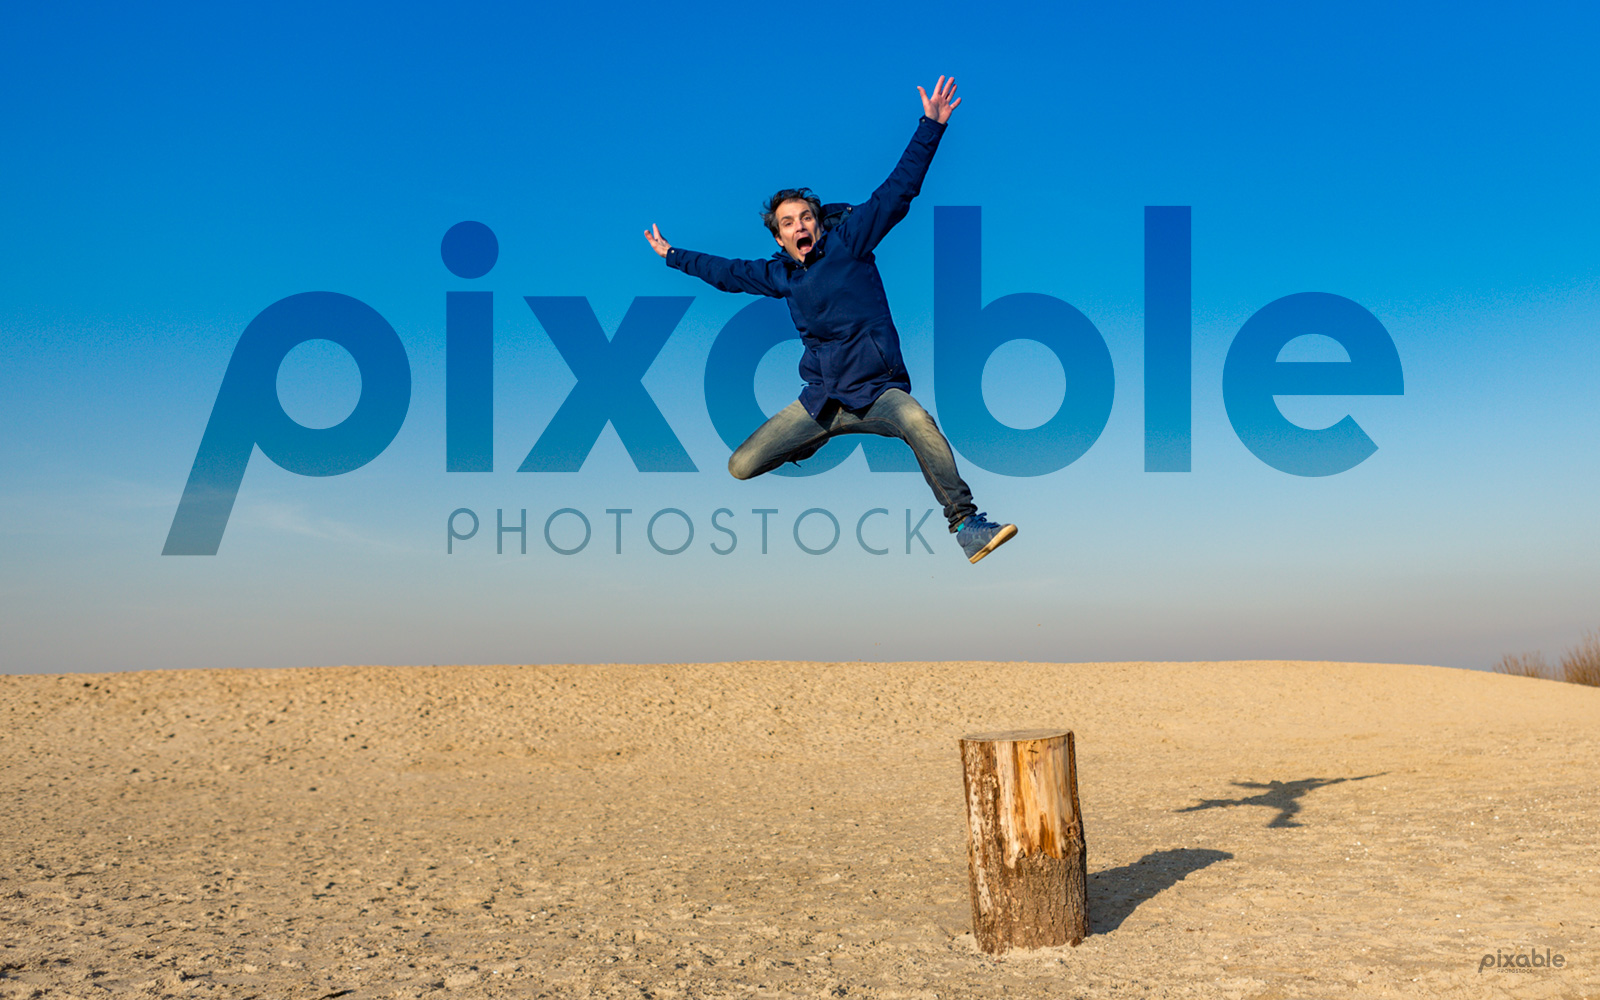 pixable photostock, Cool stock photography from the Netherlands and Europe